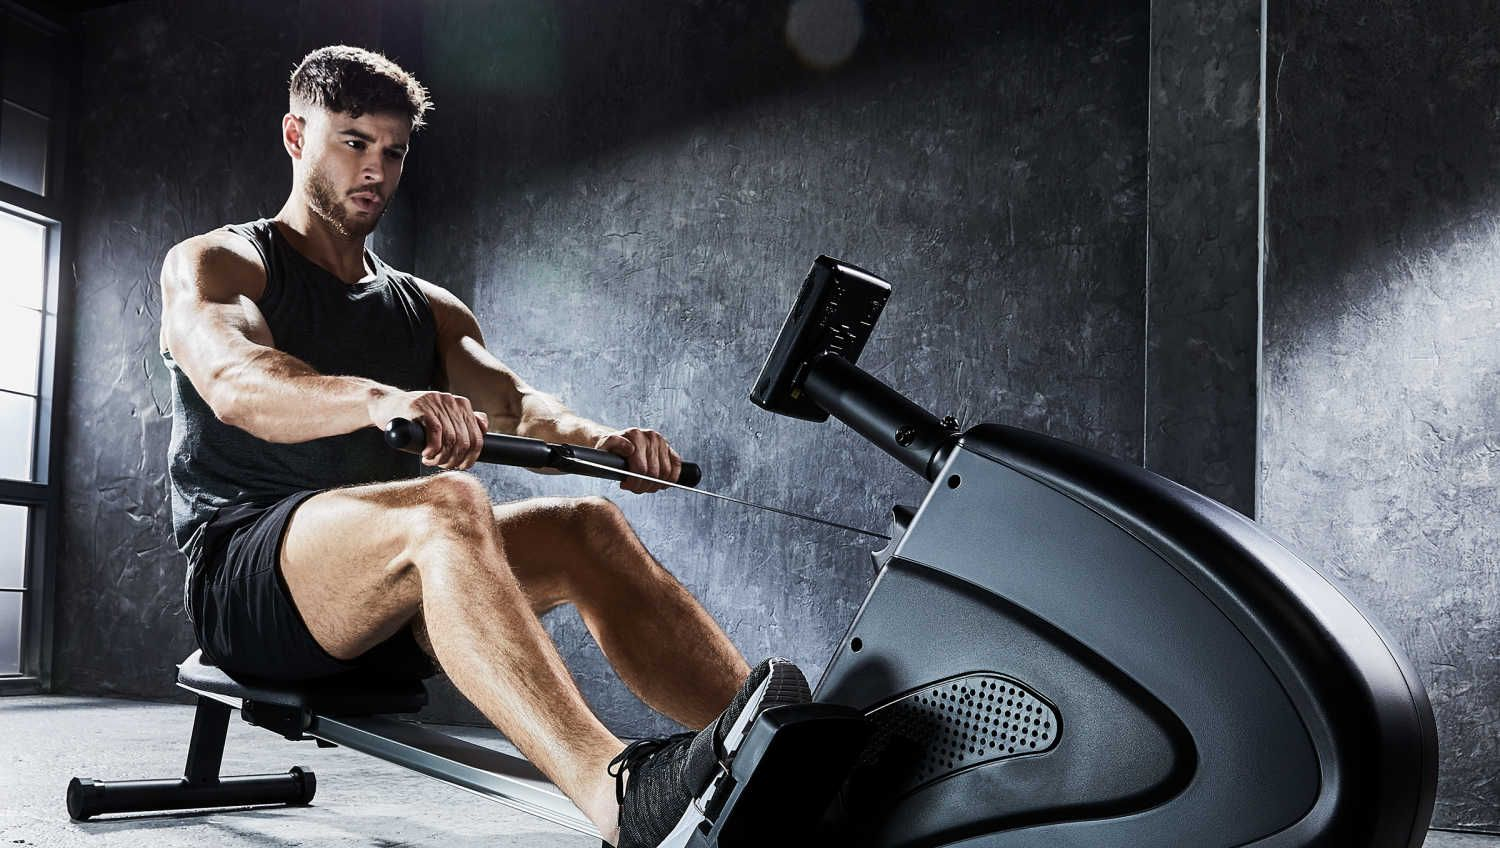 Aldi's new fitness range will seriously upgrade your home-gym